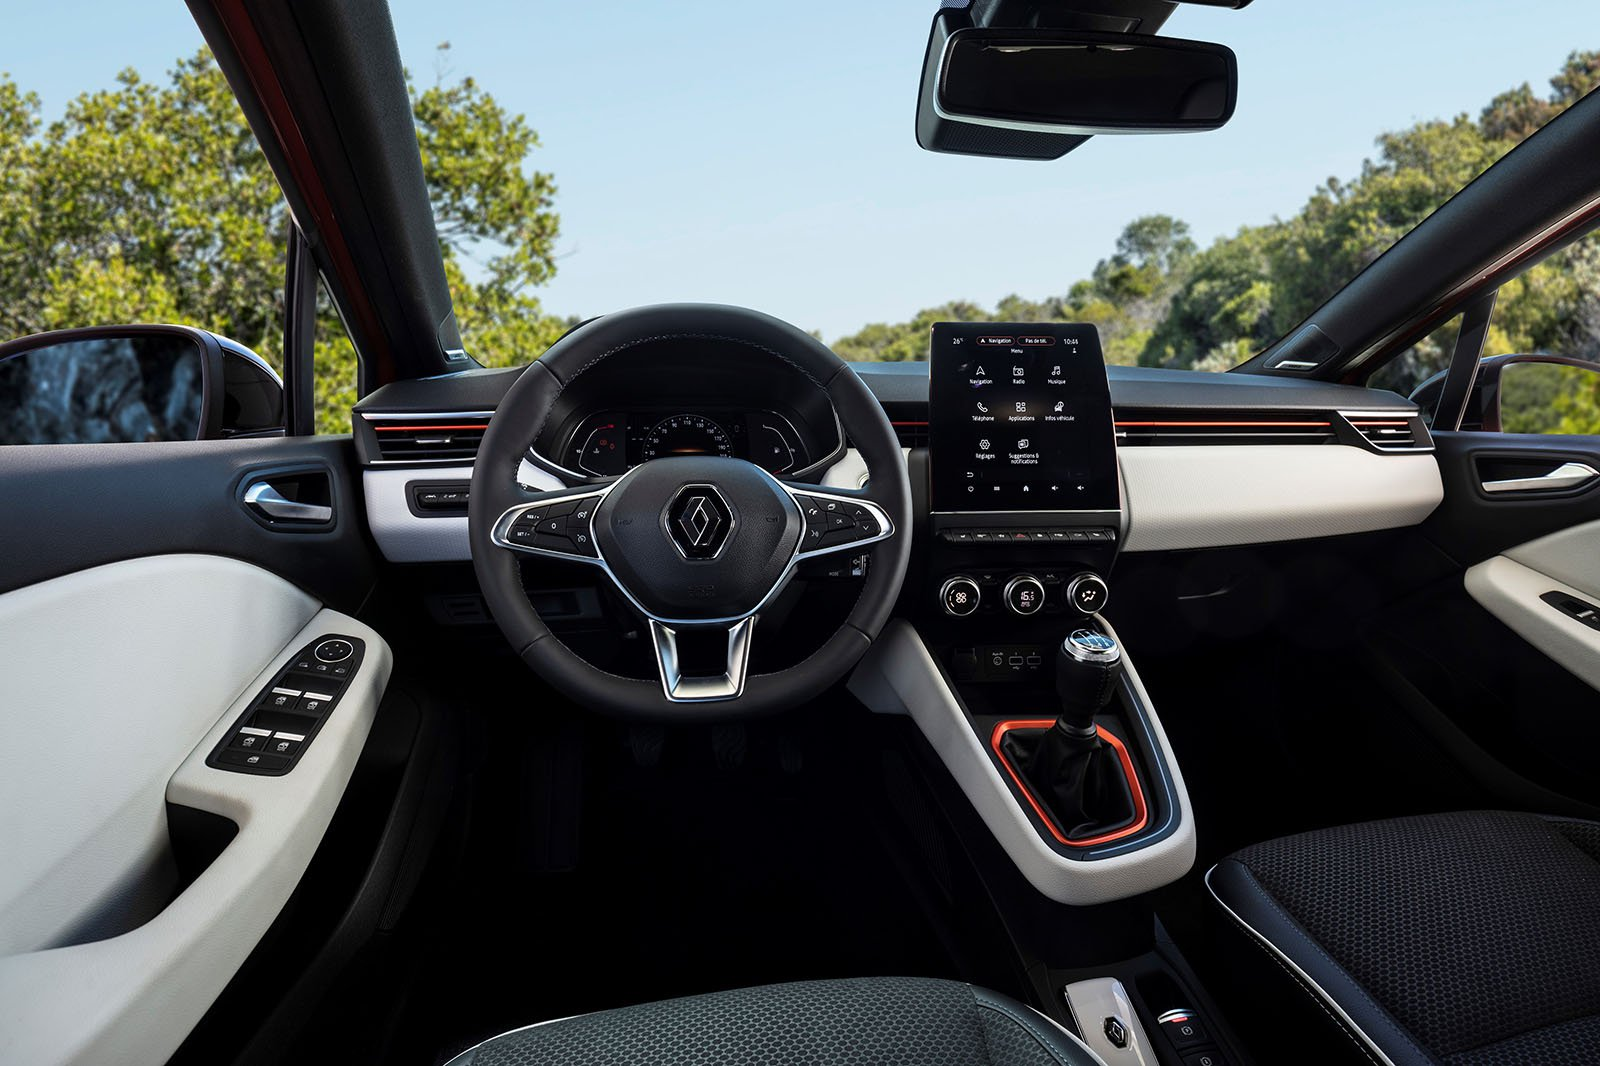 2019 Renault Clio TCe 100 rear dash